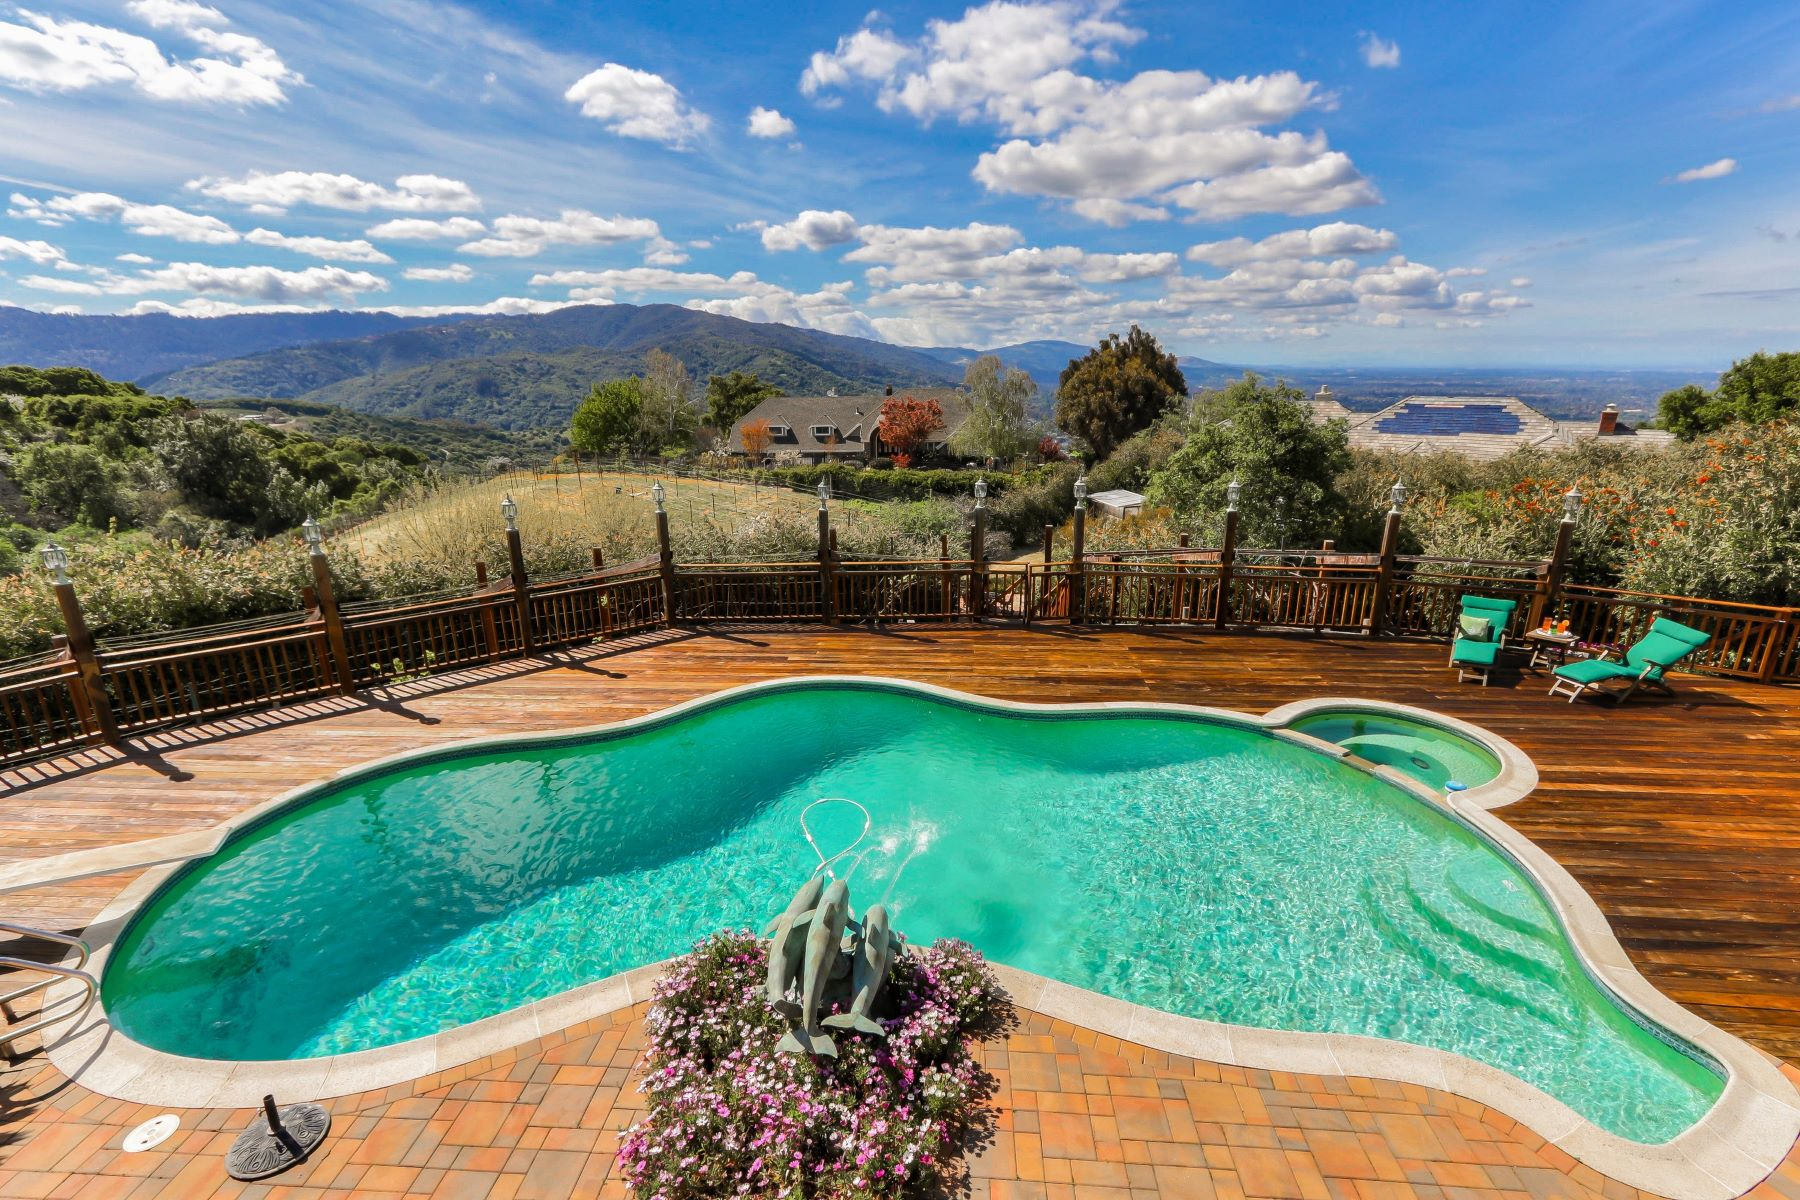 Single Family Homes for Sale at Outstanding City Light Views to San Francisco! 16375 Aztec Ridge Drive Los Gatos, California 95030 United States